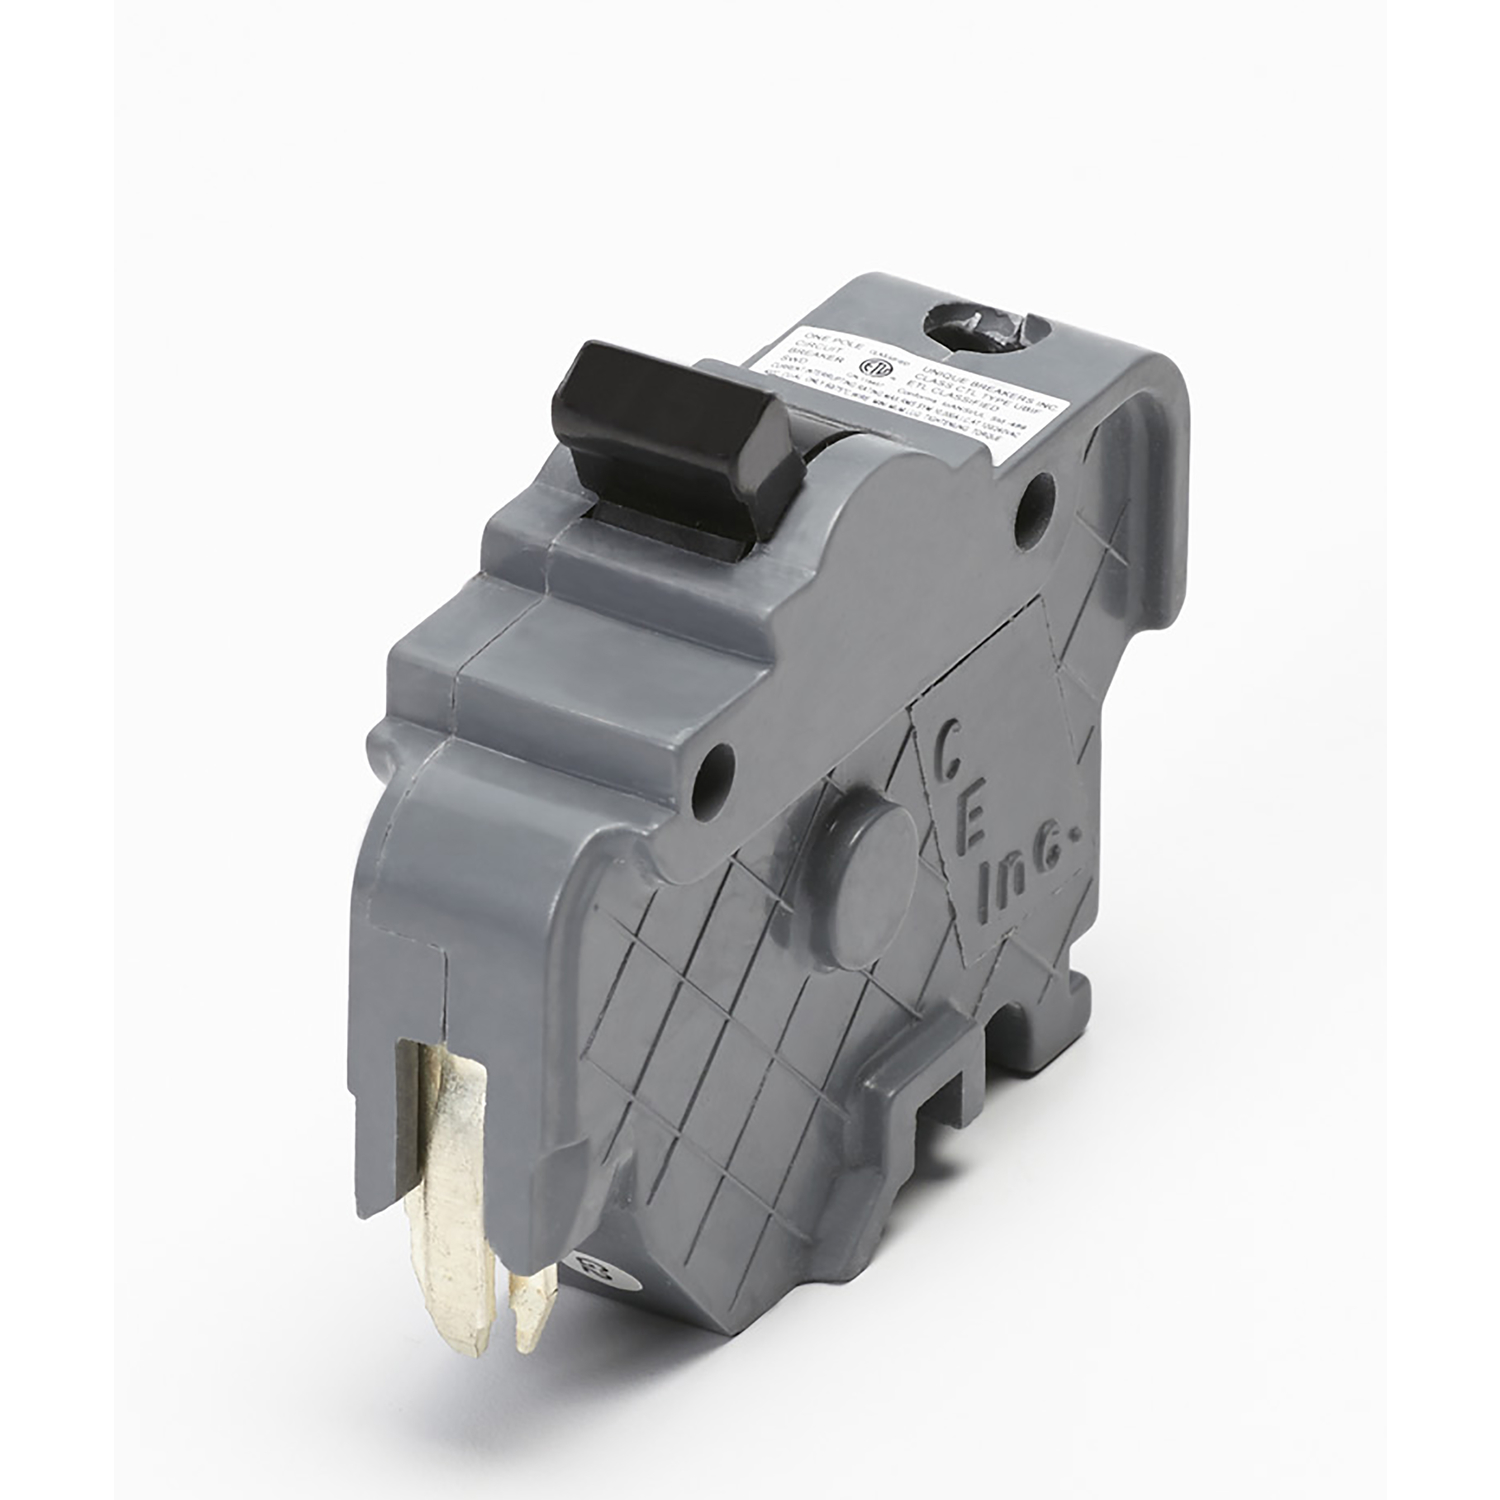 hight resolution of federal pacific 15 amps standard single pole circuit breaker ace hardware